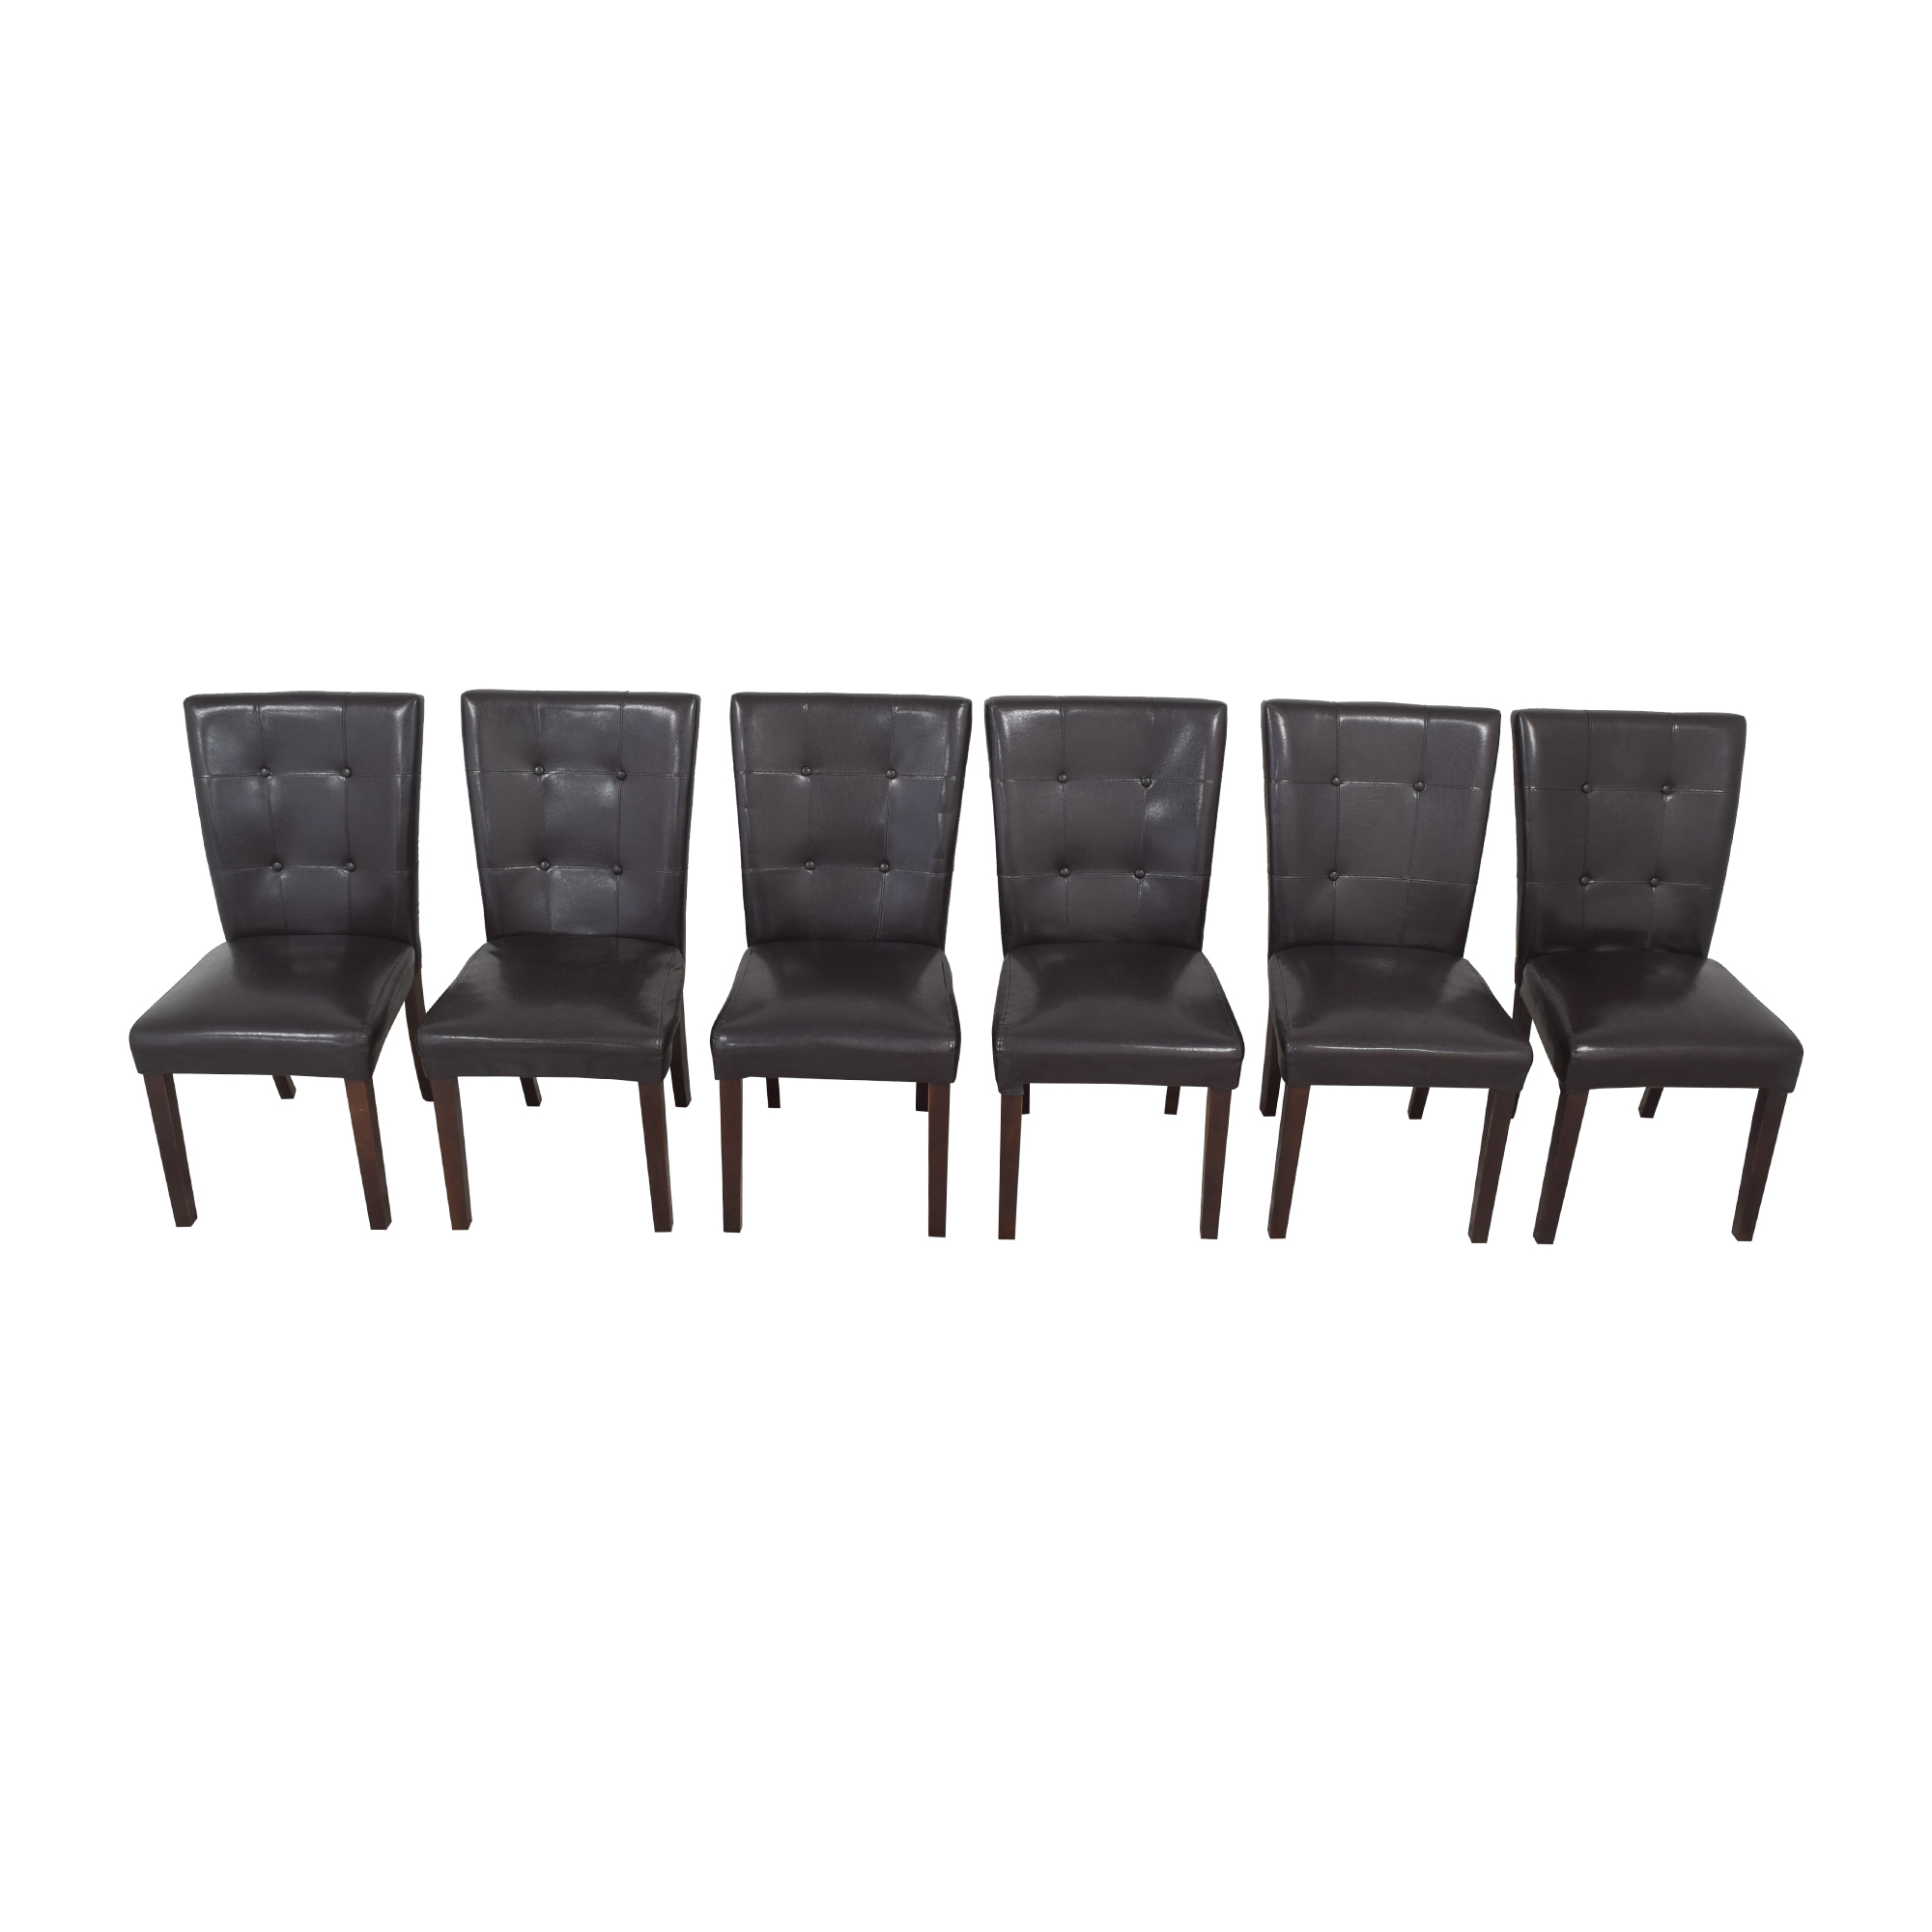 Tufted Parsons Dining Chairs / Chairs